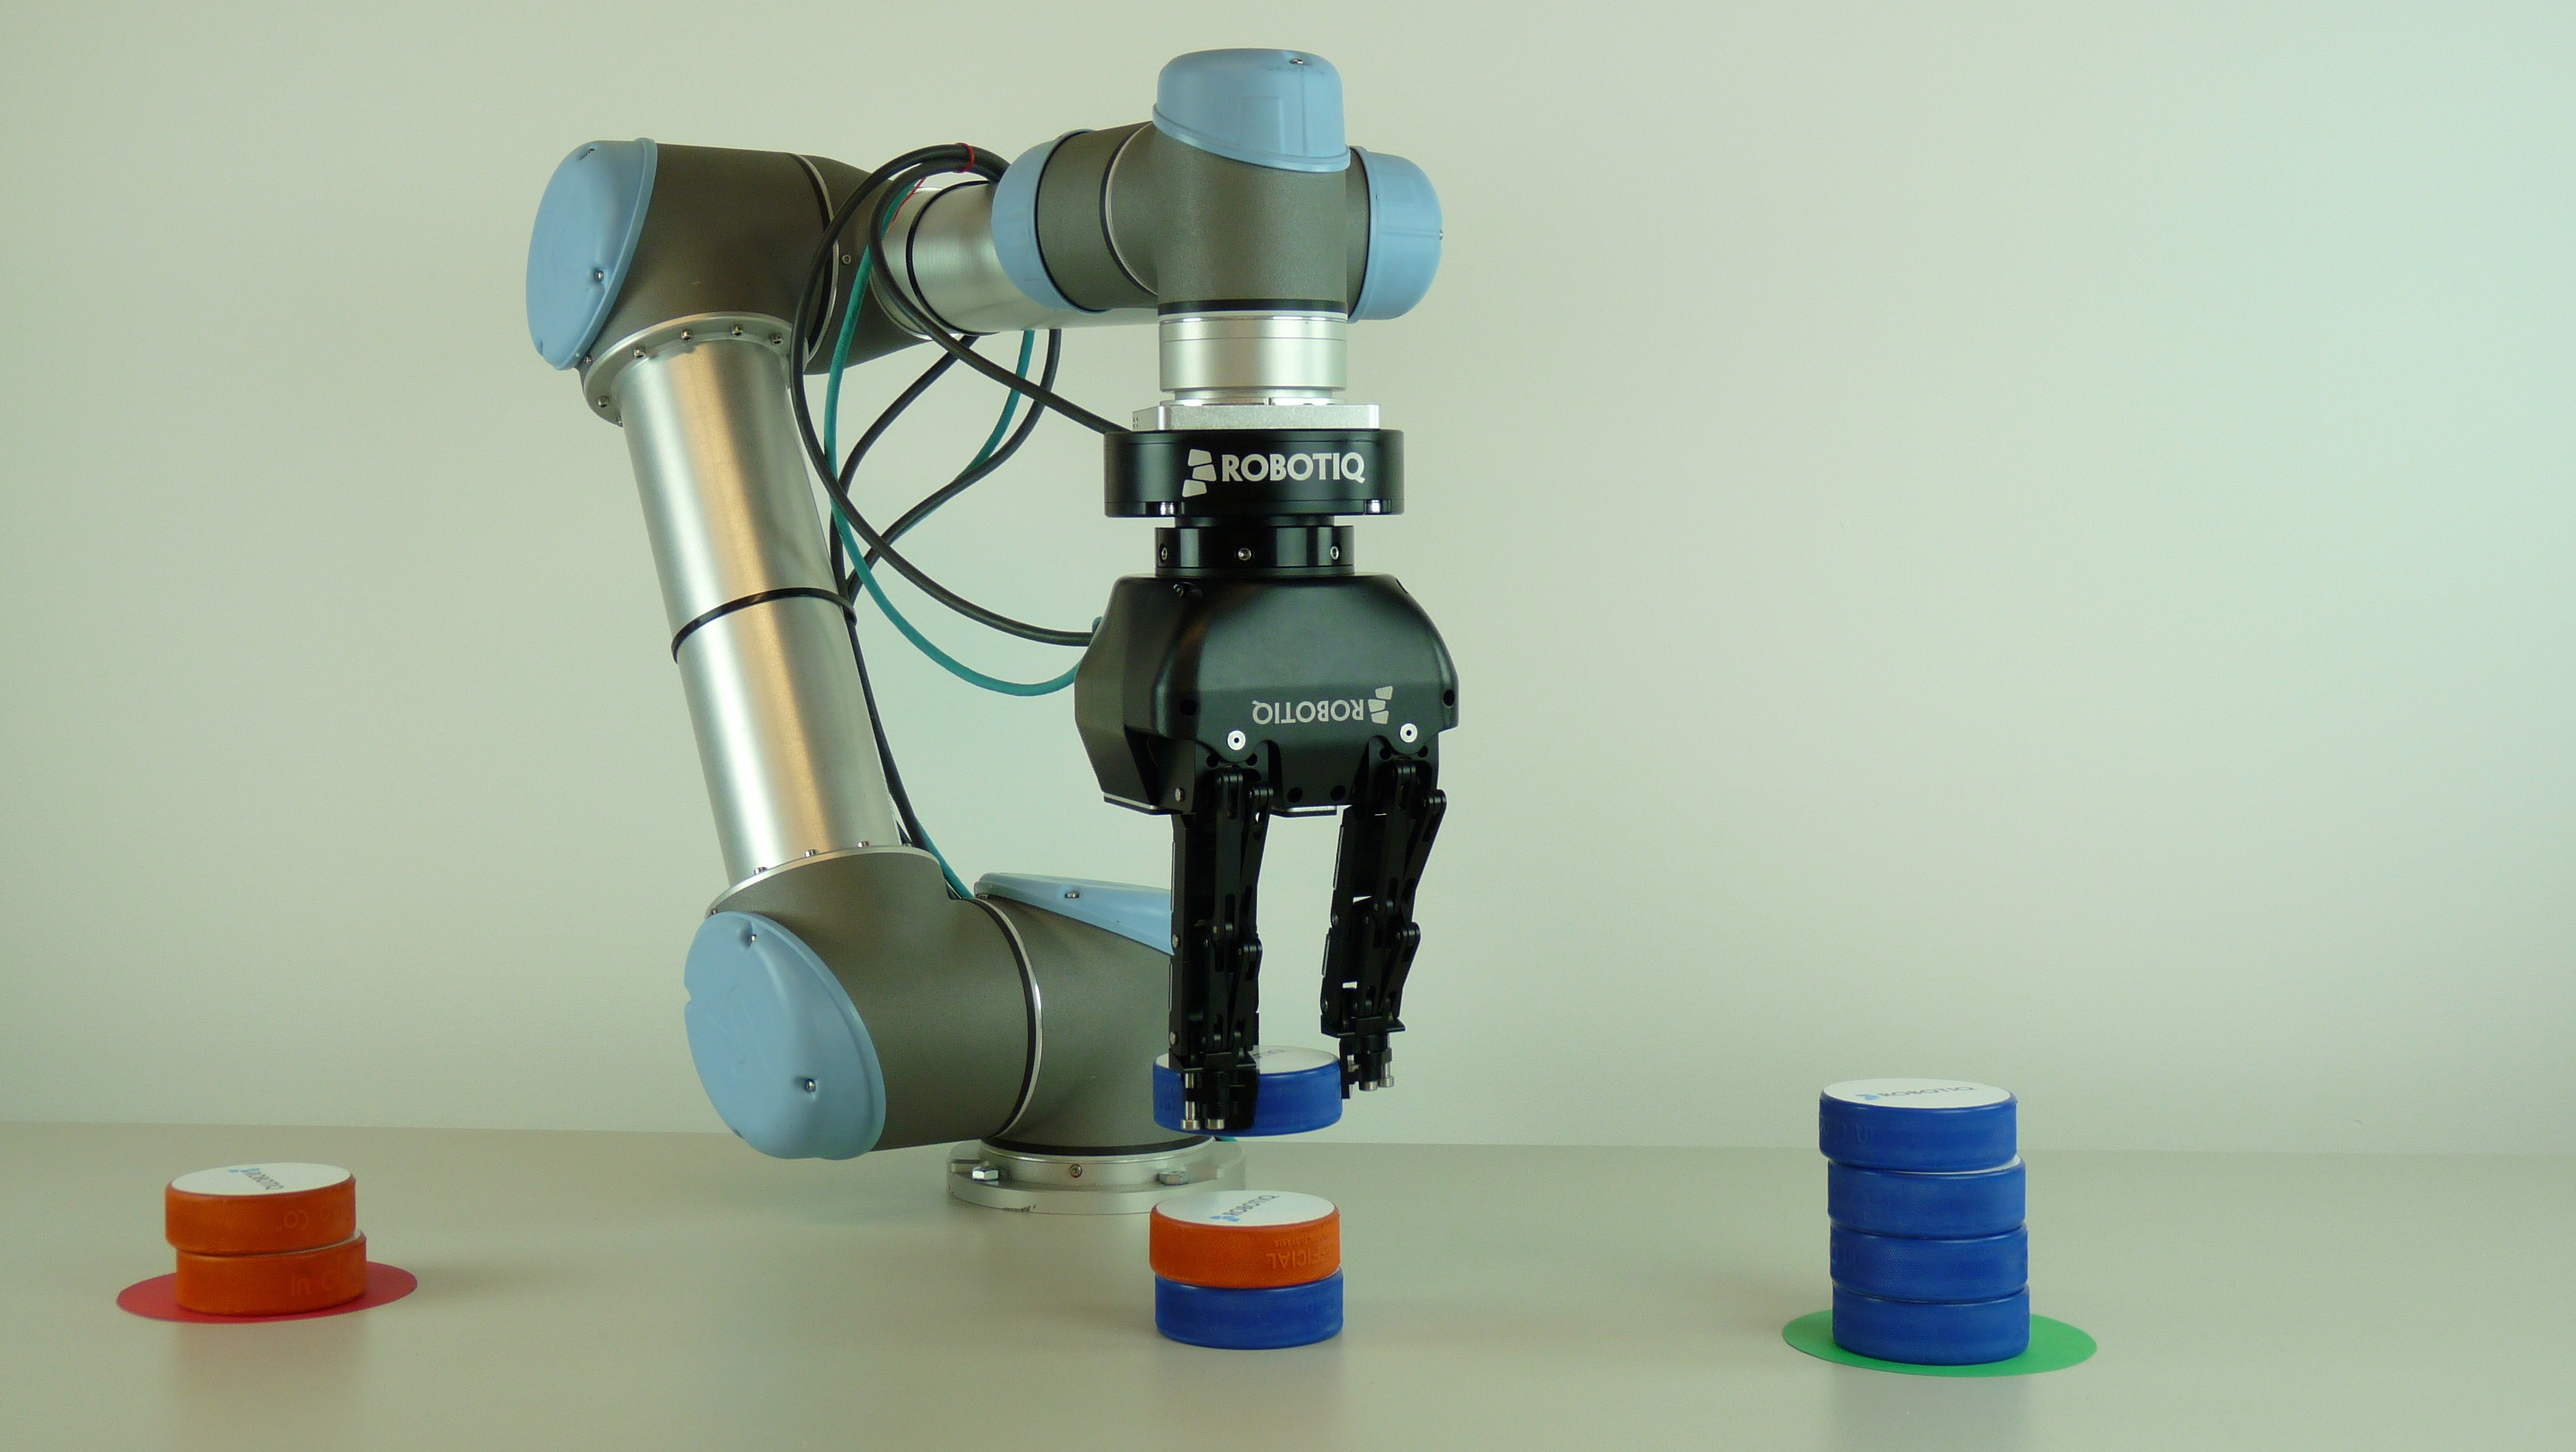 5 Reasons Why You Should Use Force Feedback in Robotics